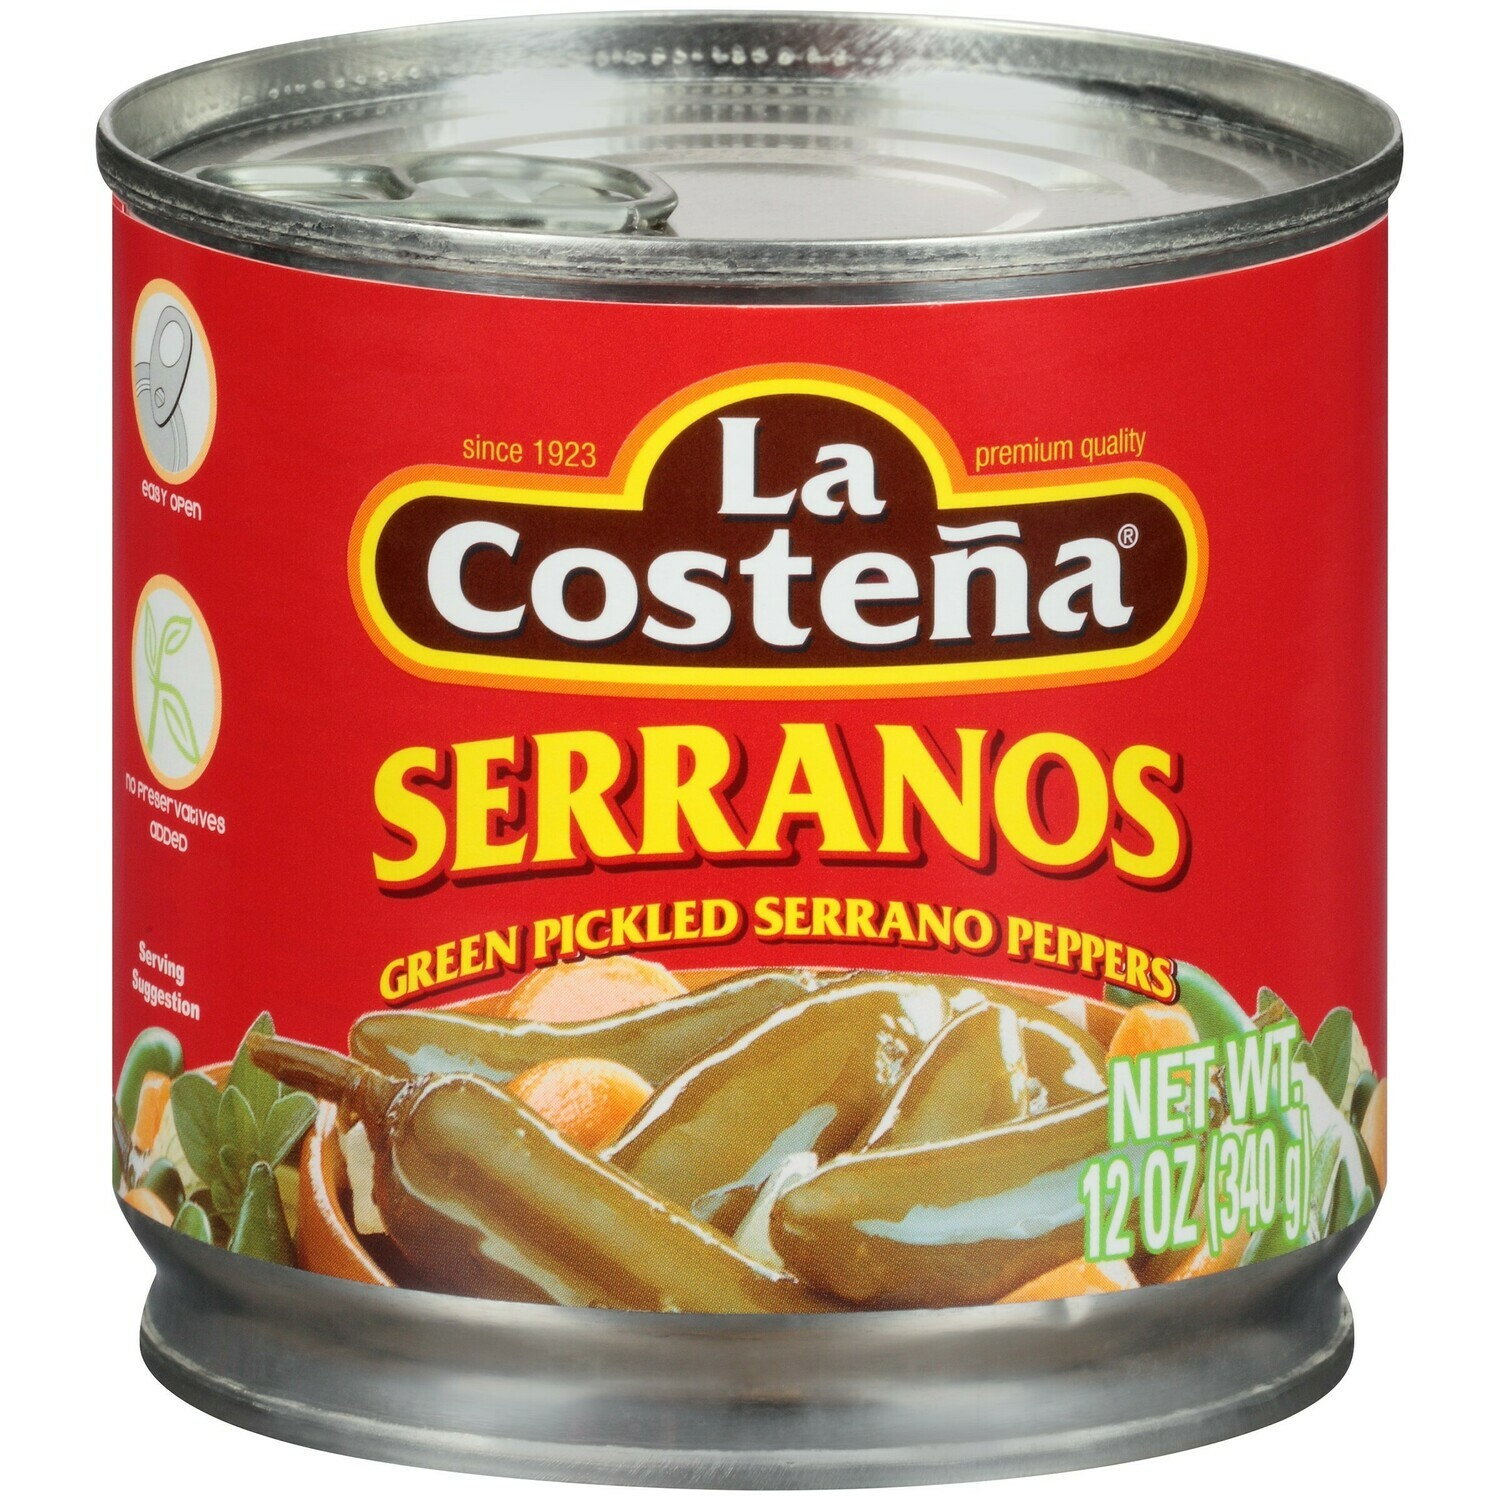 La Costena Serrano Pickled 7oz